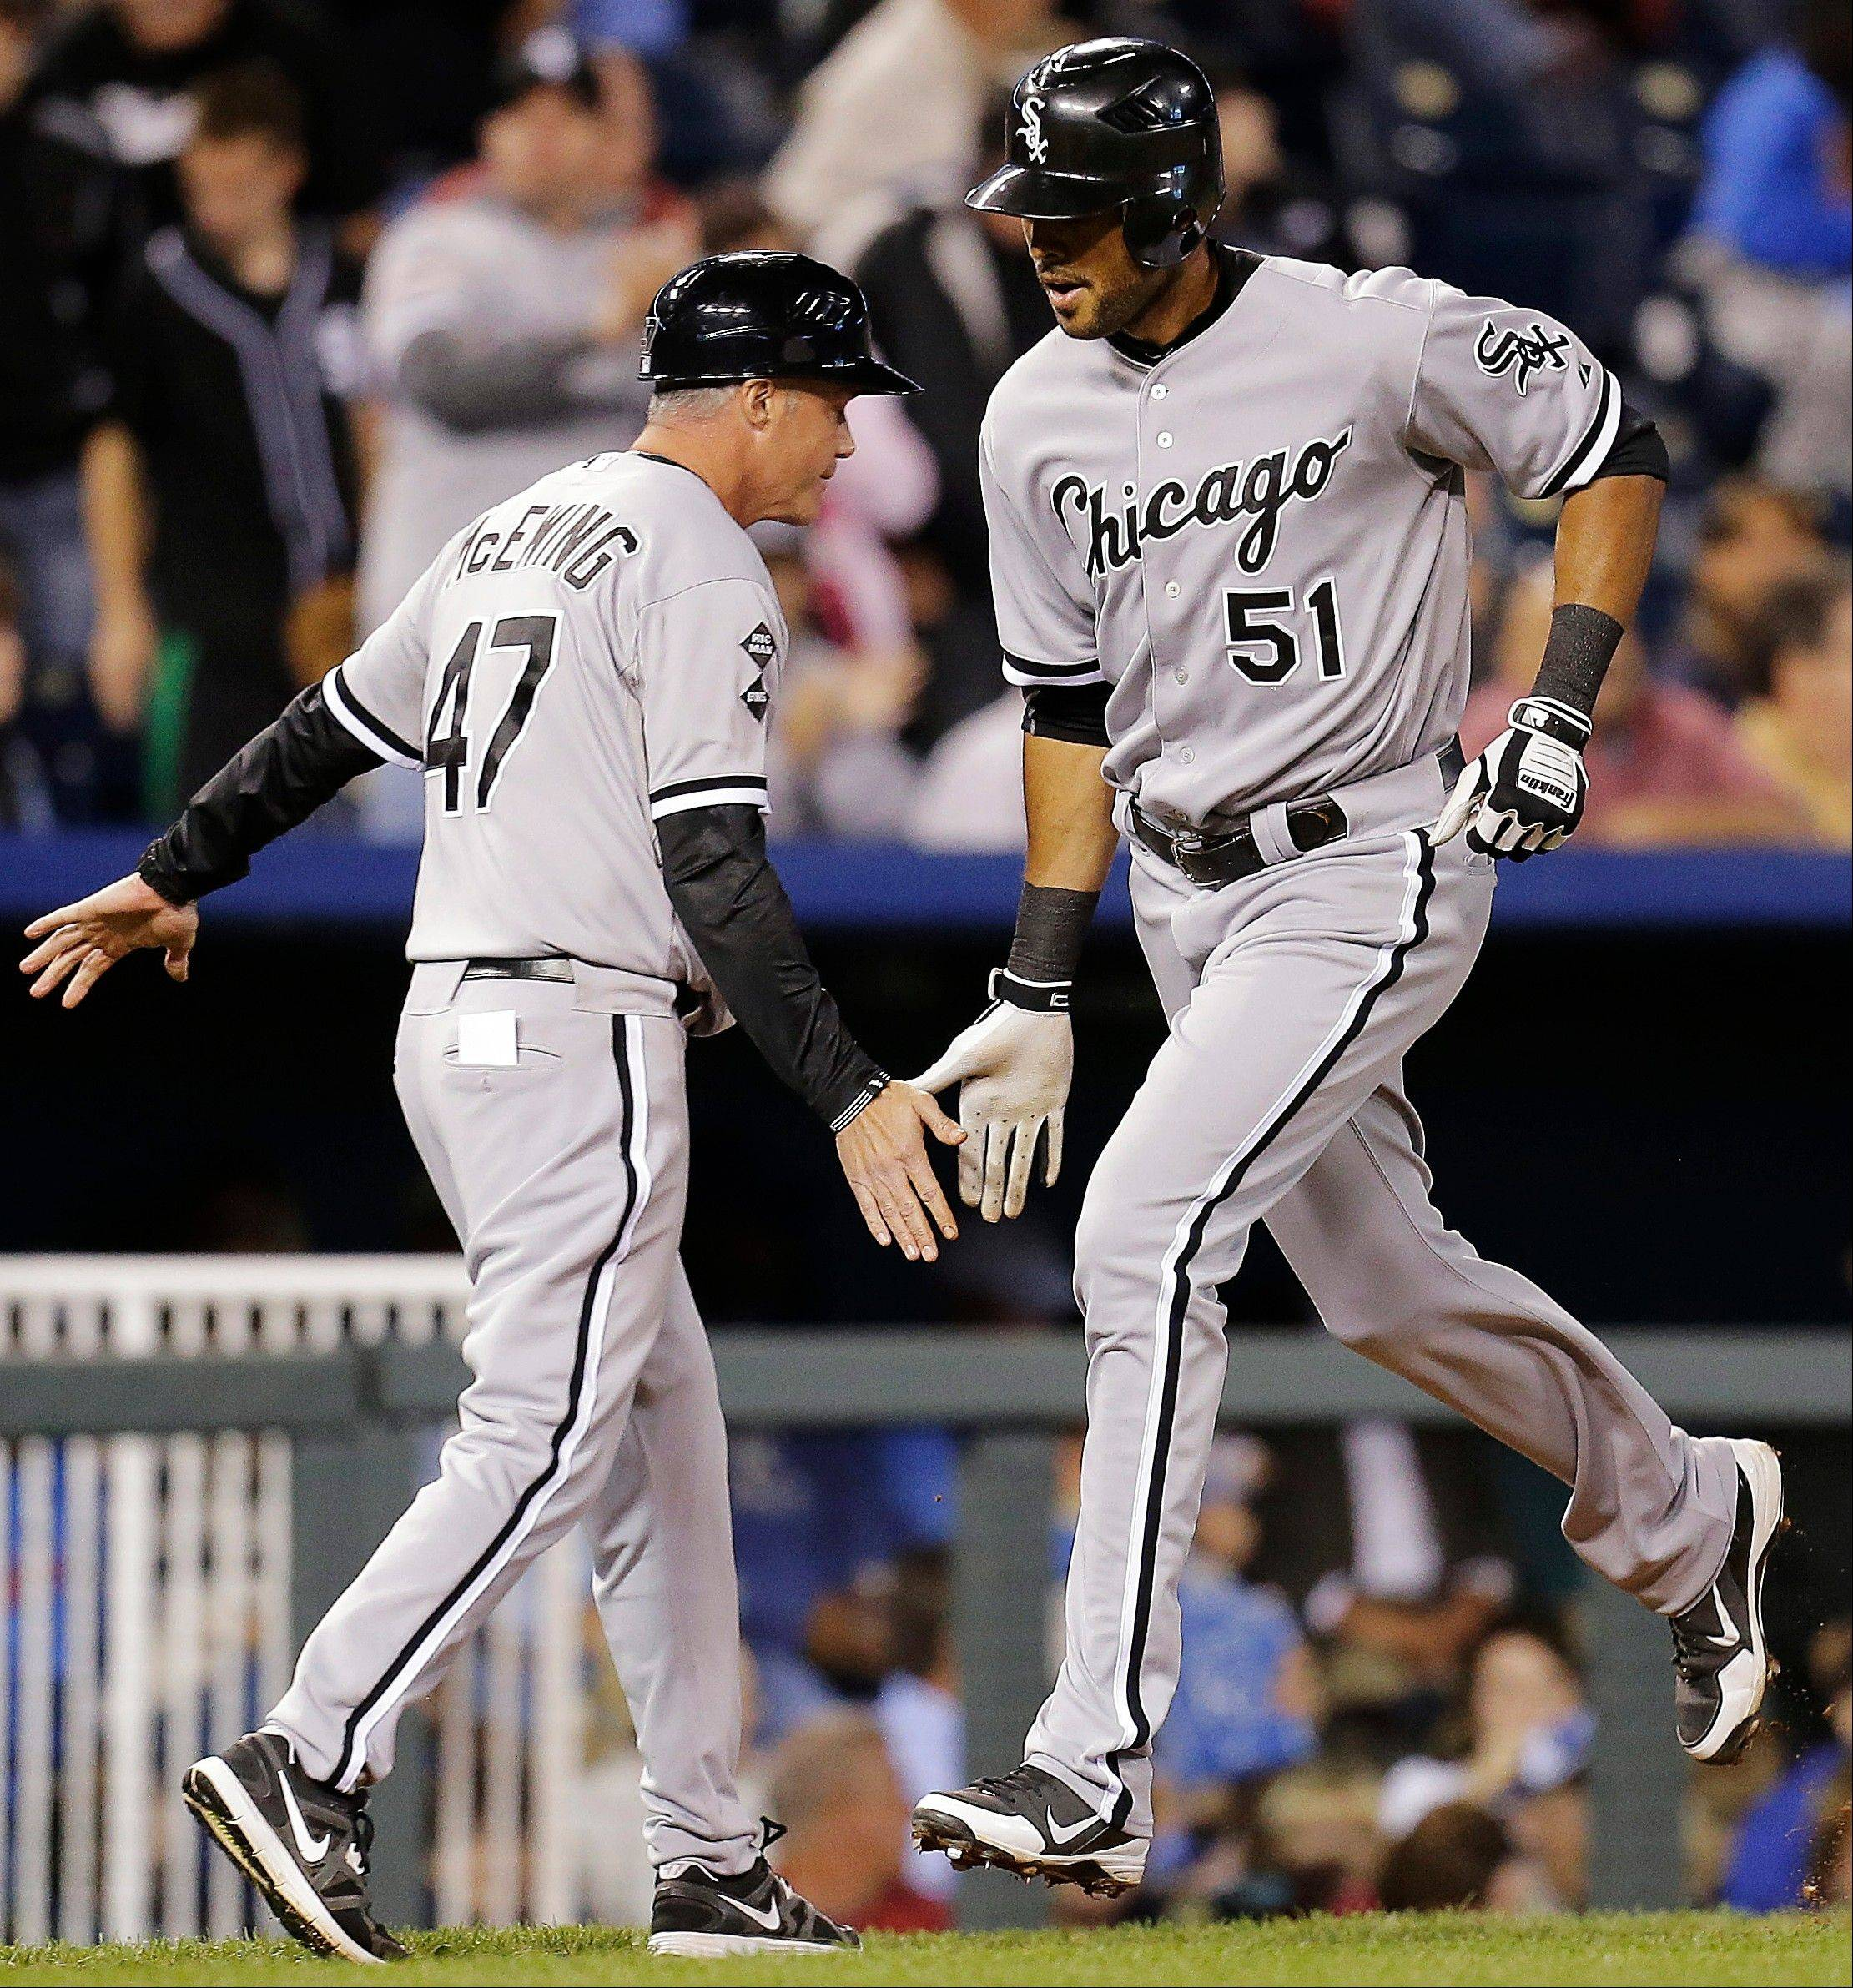 The White Sox' Alex Rios celebrates with third-base coach Joe McEwing after hitting a solo home run during the seventh inning Tuesday night at Kansas City.